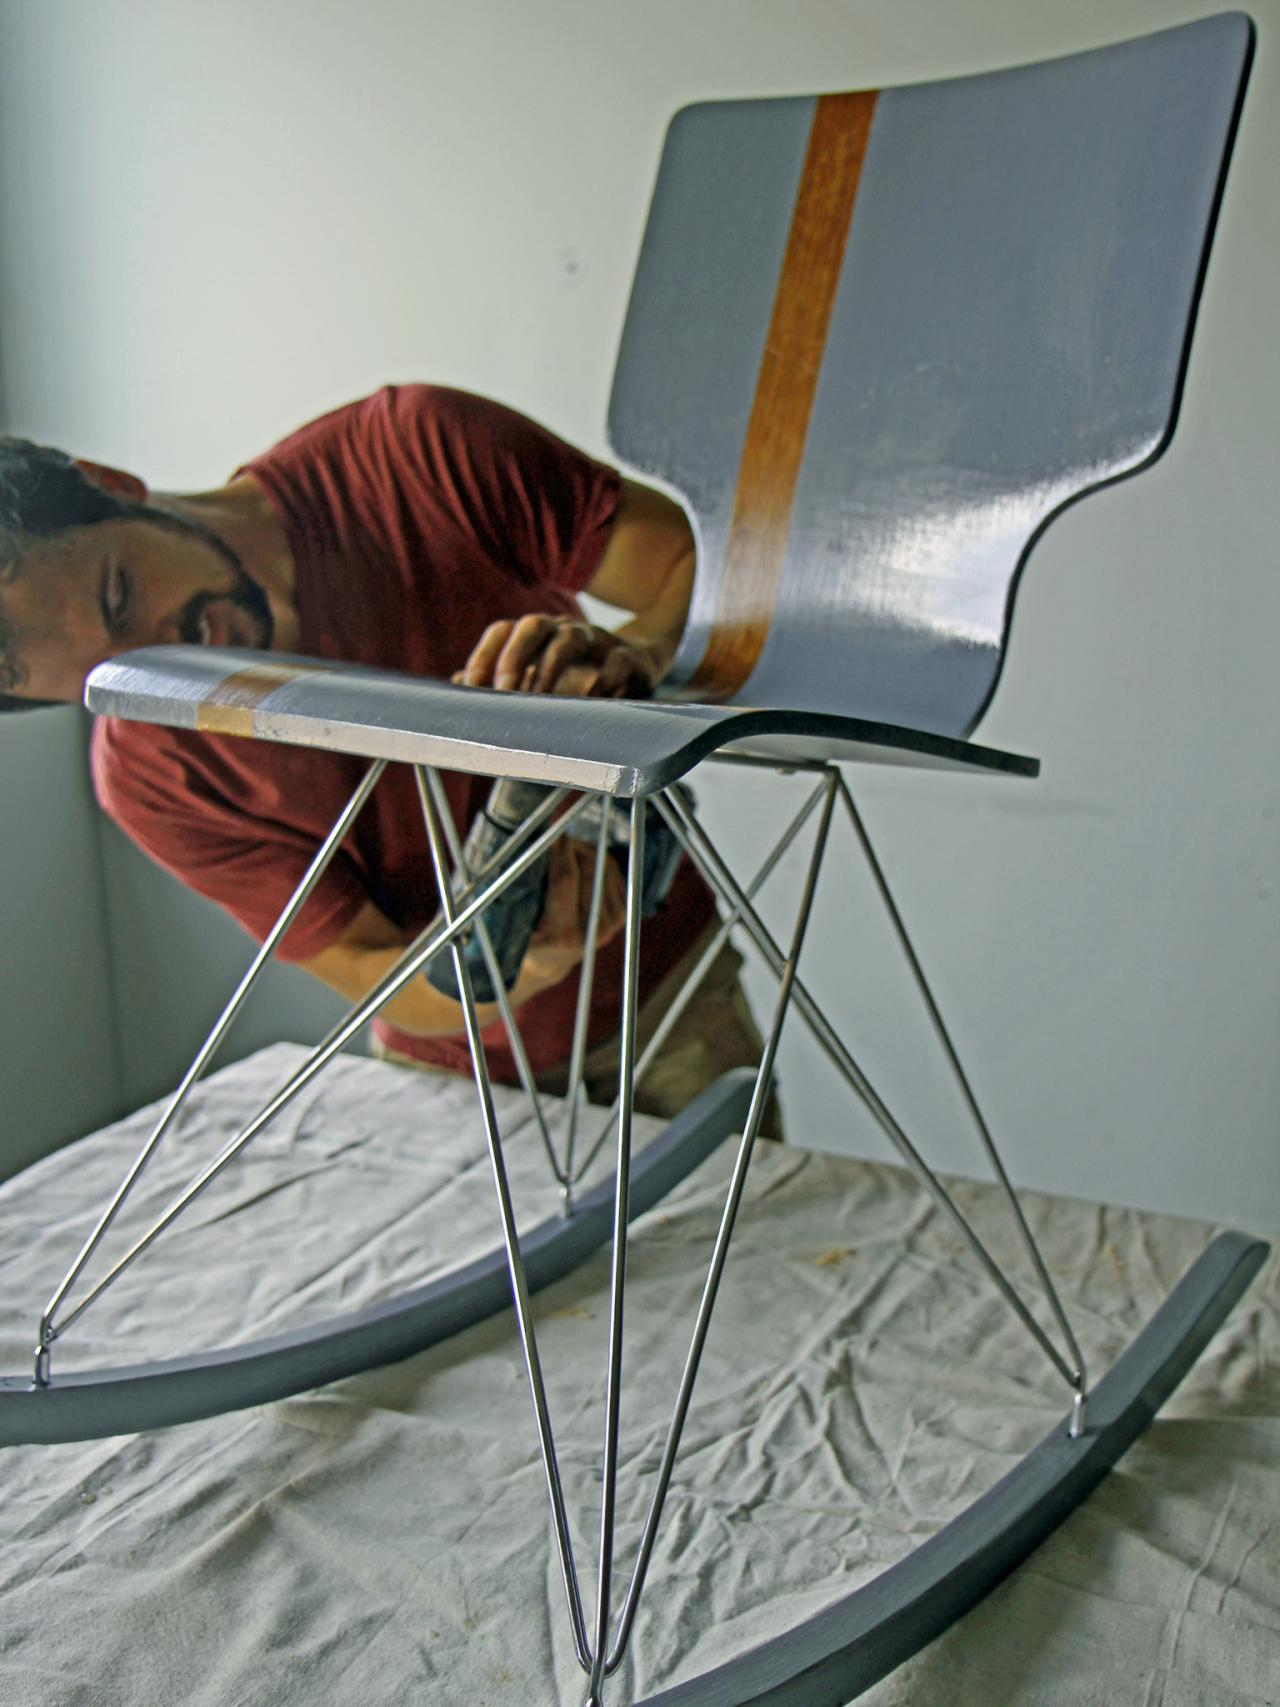 Best Reading Chair For Bad Back How To Make An Upcycled Rocking Chair Danmade Watch Dan